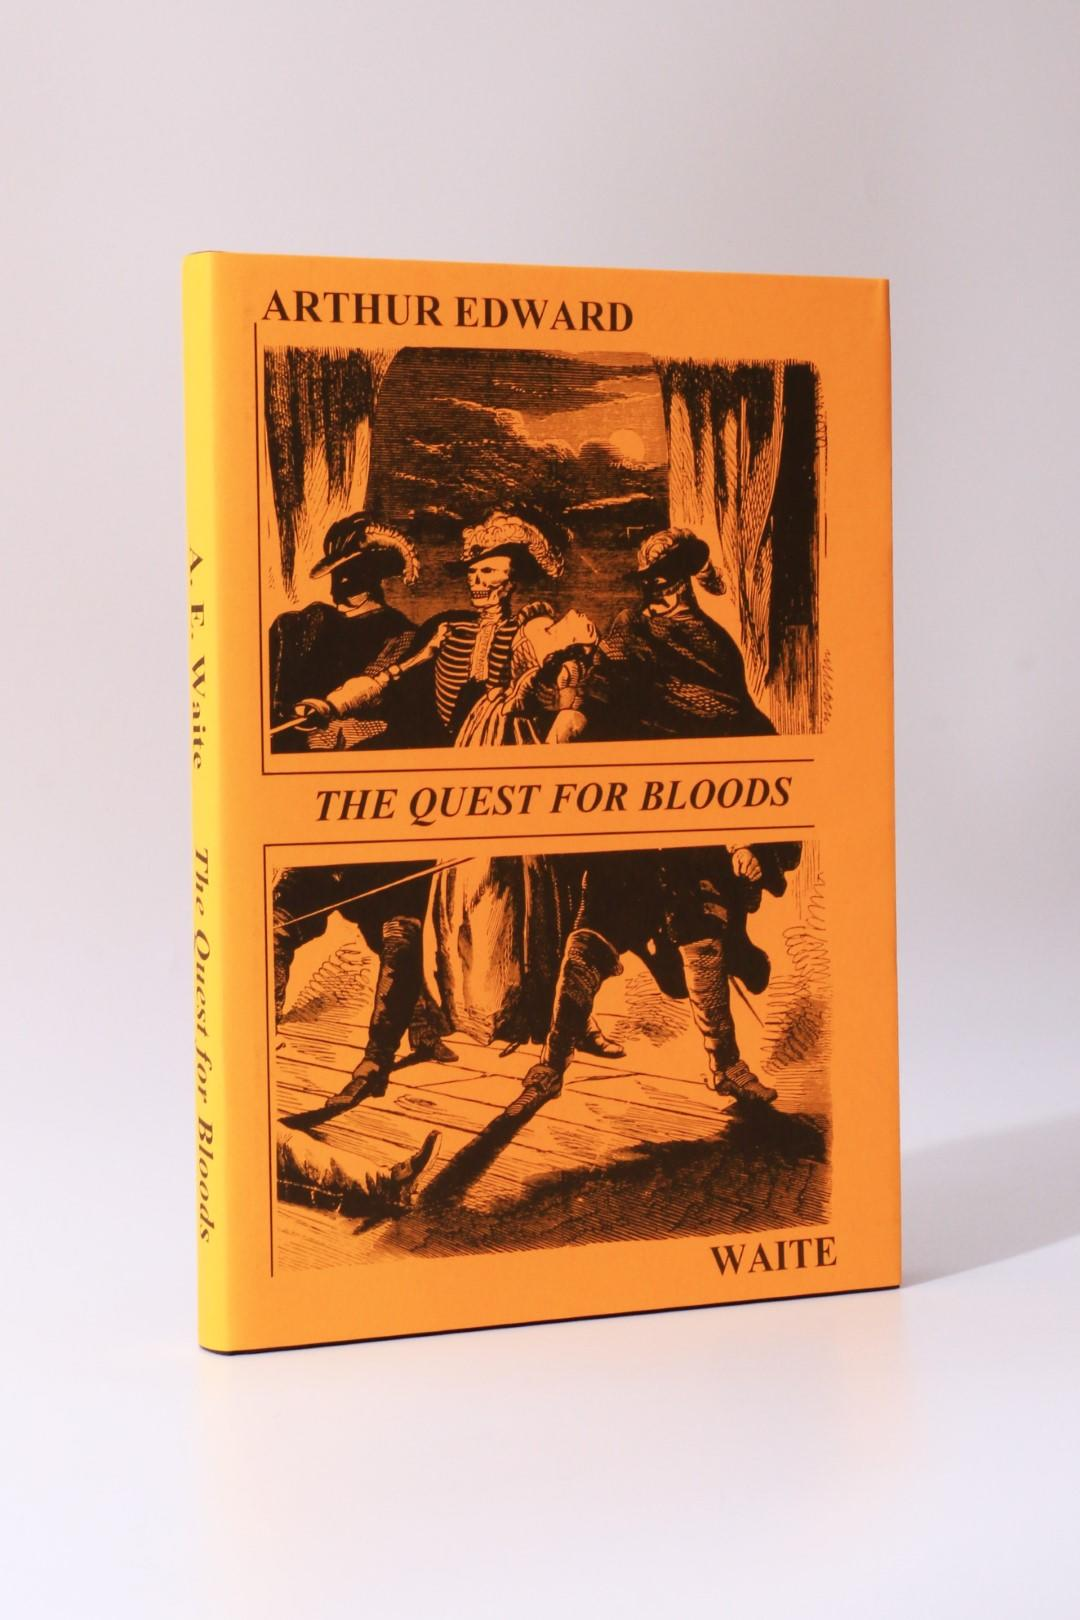 Arthur Edward White - The Quest for Bloods: A Study of the Victorian Penny Dreadful - Privately Printed, 1997, Limited Edition.